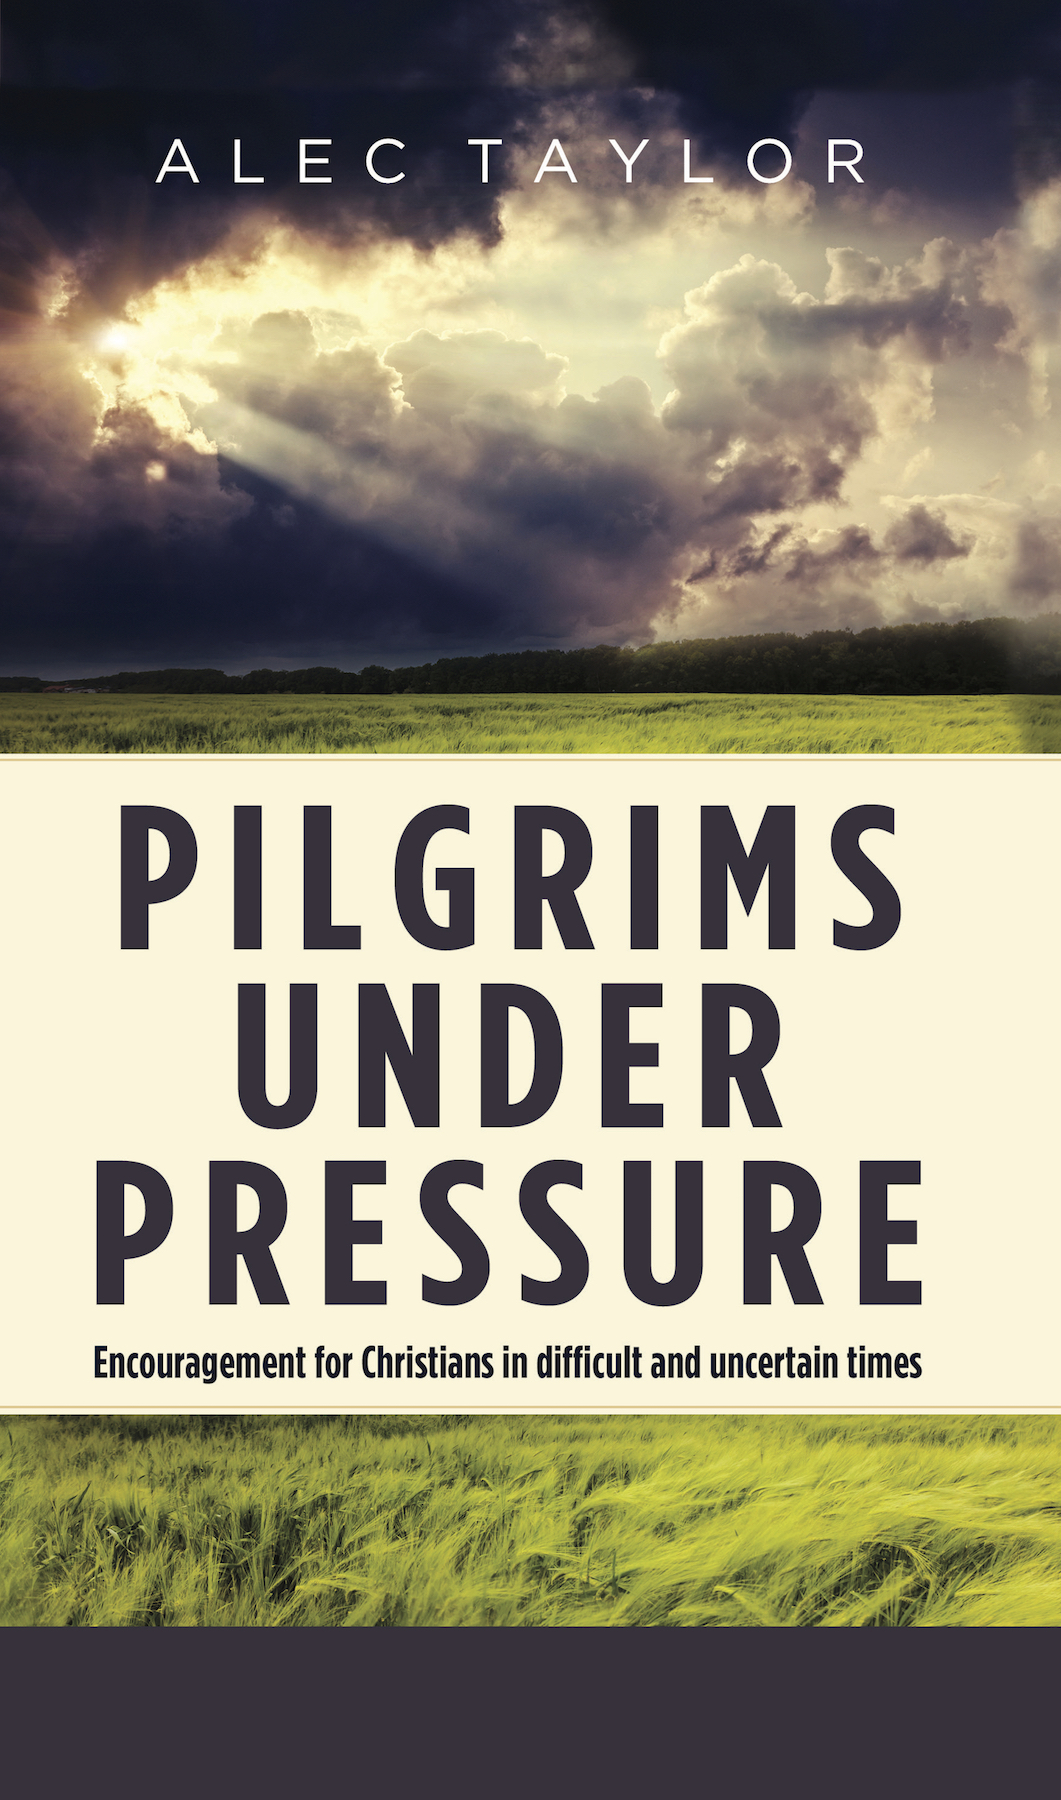 Ep Books The Store For Books: Pilgrims Under Pressure By Alec Taylor